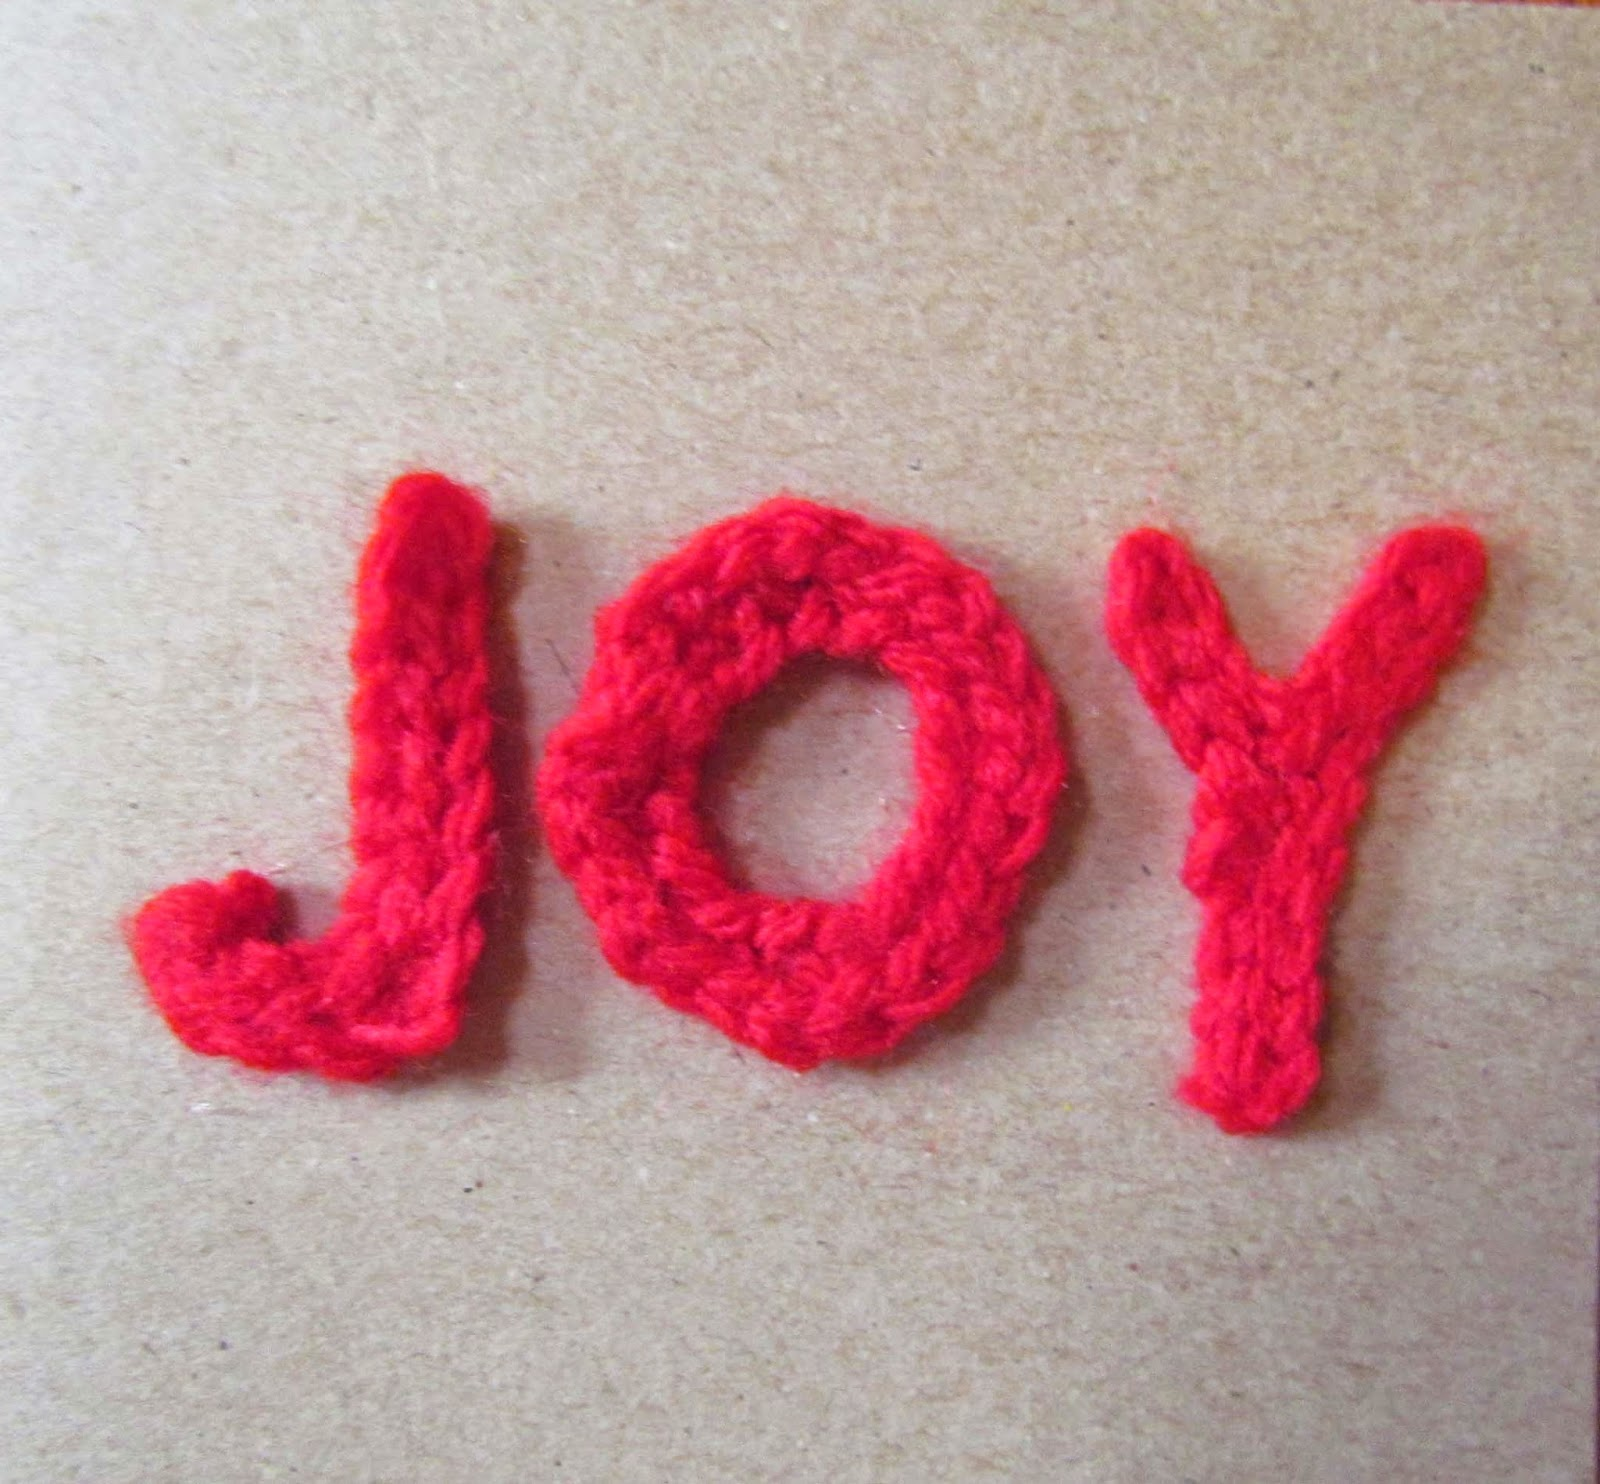 Crochet Letters : Pics Photos - Crochet Letters And